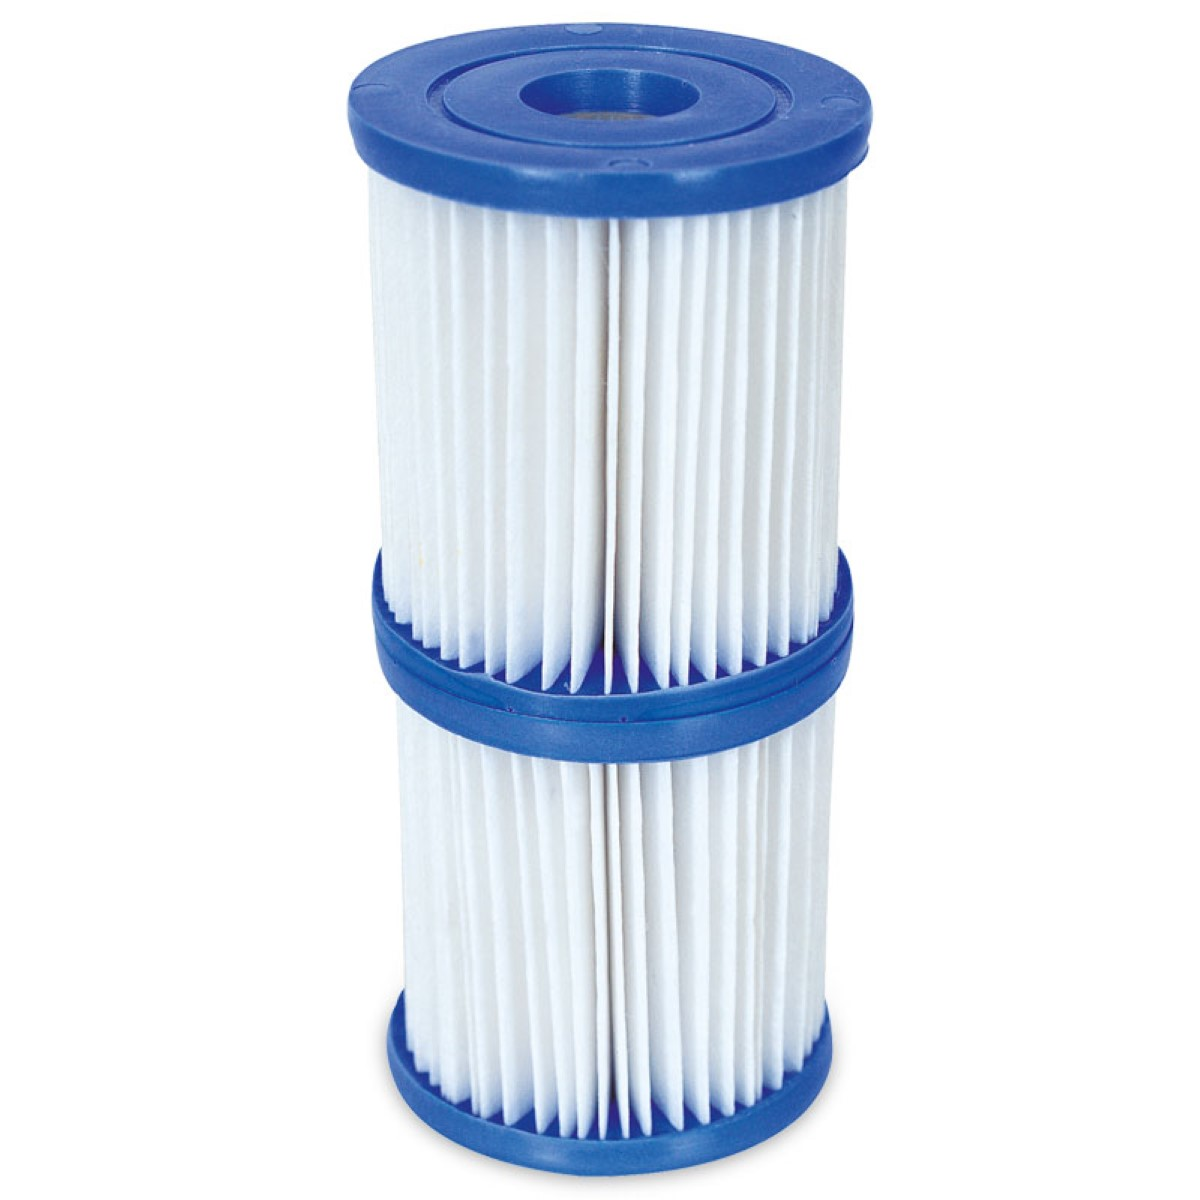 Bestway Filter Cartridge Size 1 Lay Z Spa And Swimming Pool Filter Cartridge